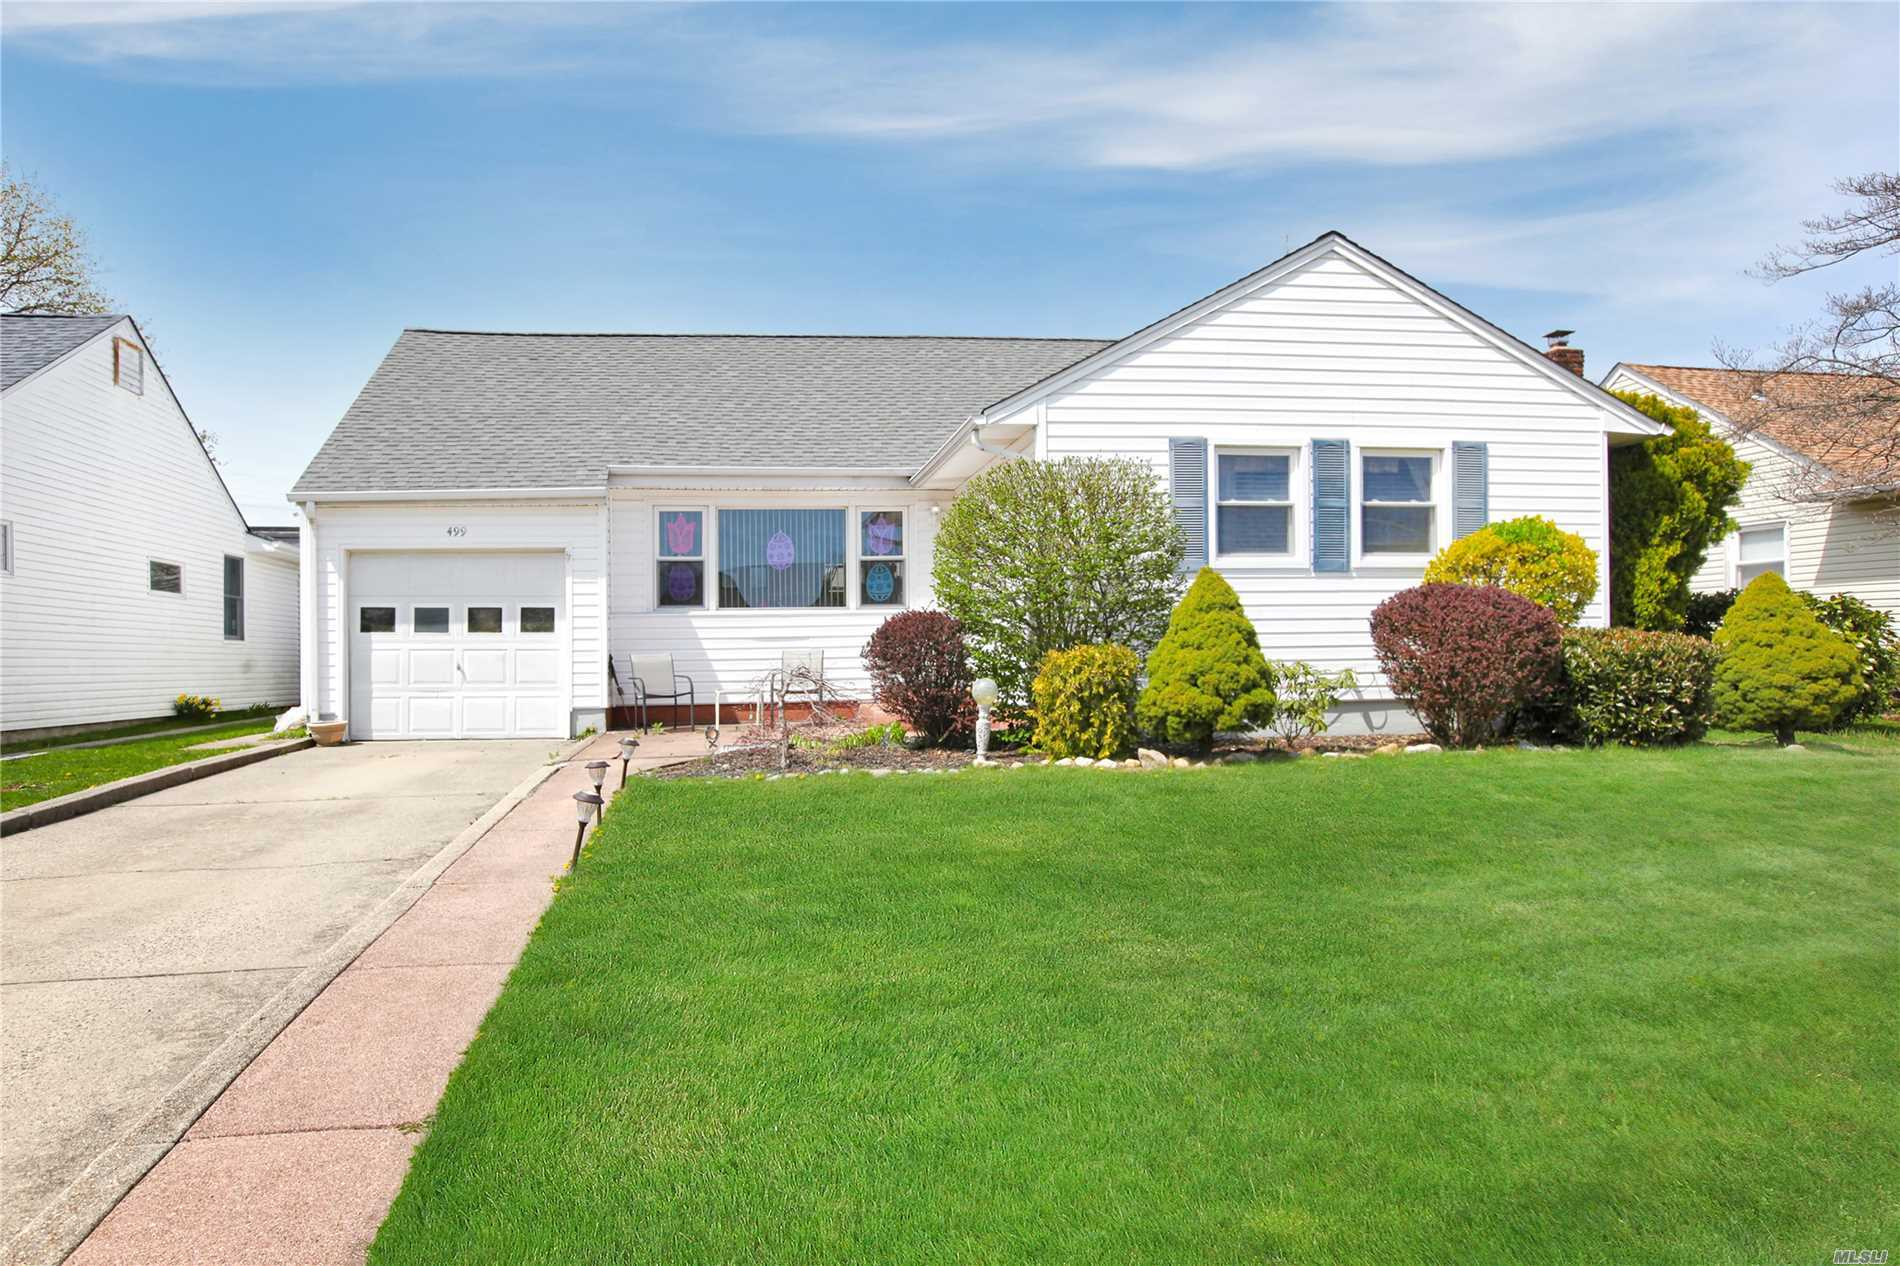 Great Ranch in Bethpage in lovely neighborhood with sidewalks and lamp posts. 3 bedroom 1 bath with full bath in basement as gift. Updated heating system. Roof/siding approx 15 years old.